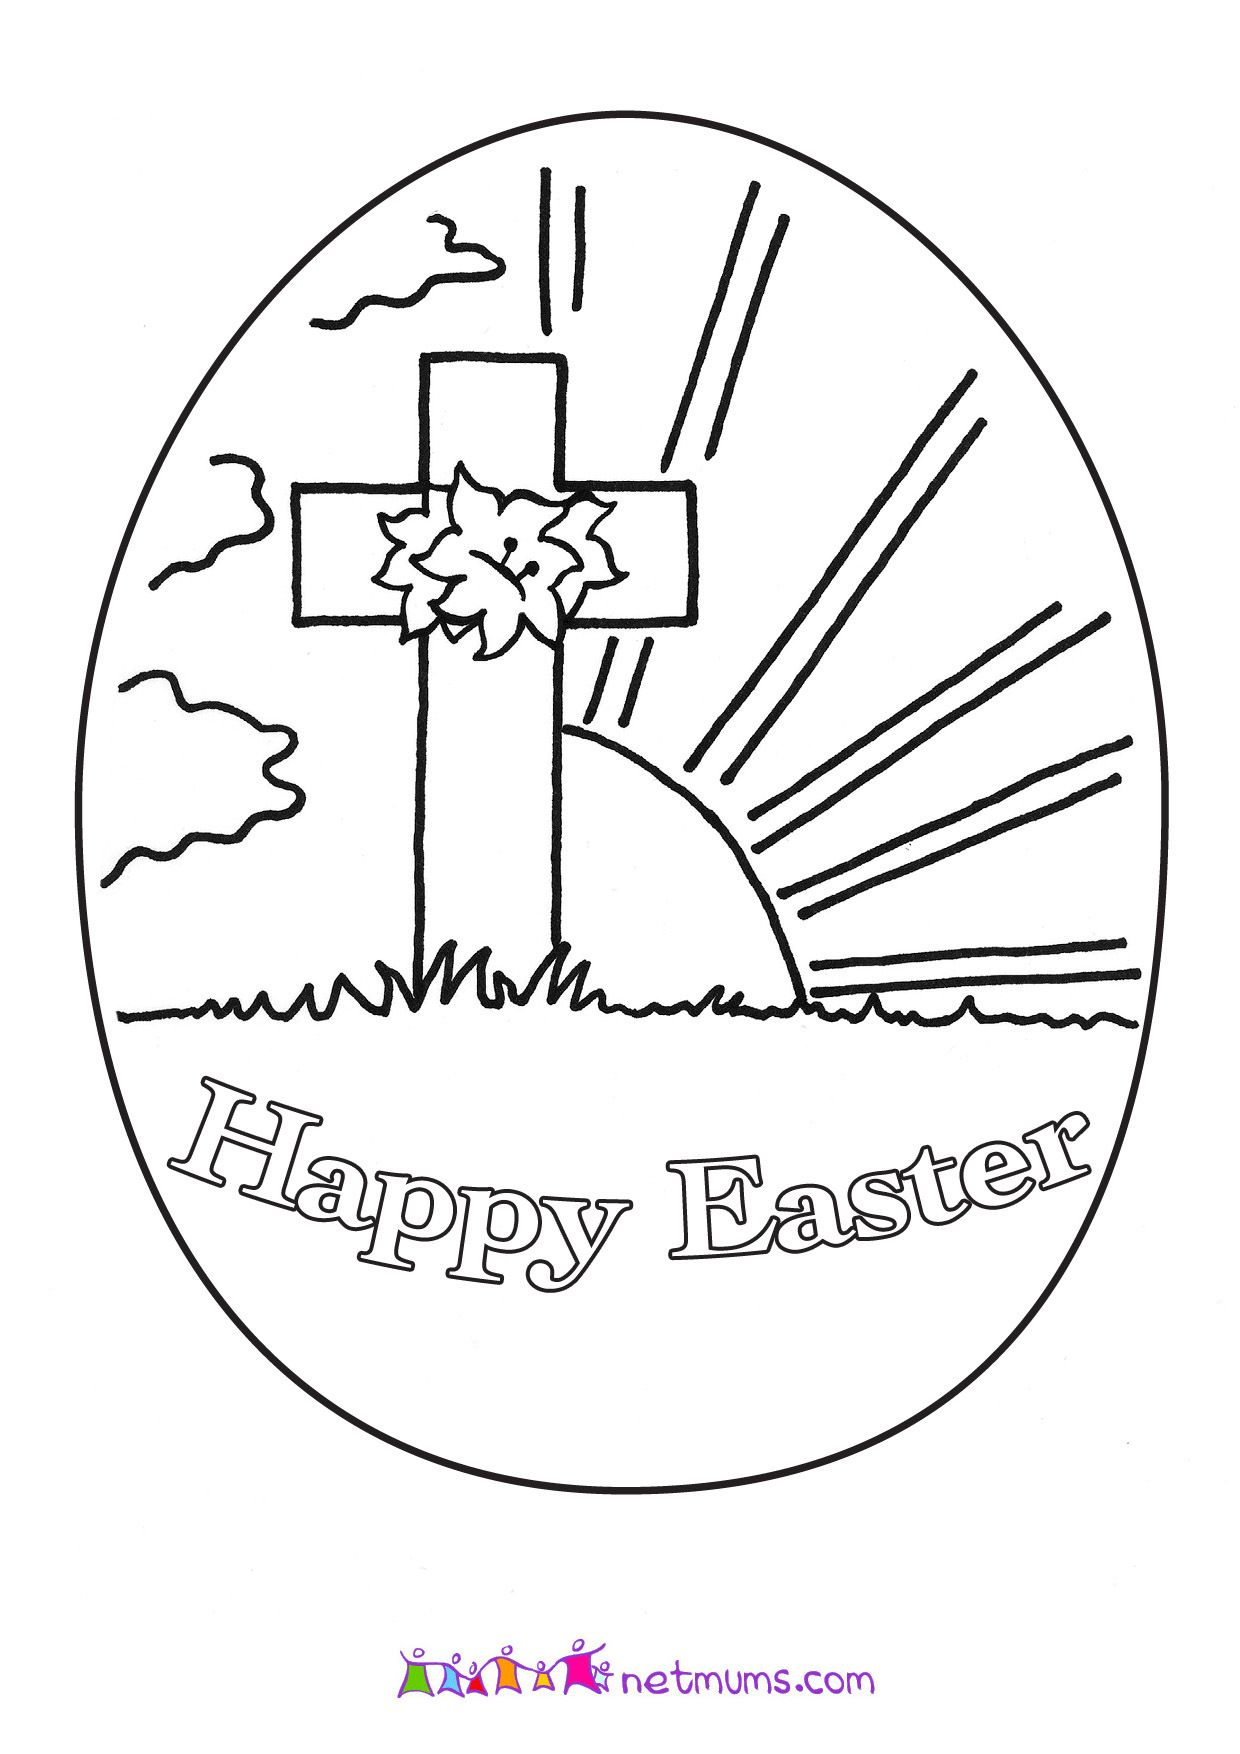 Easter Thirtyfour Jpg 1240 1754 Easter Coloring Pages Easter Printables Free Easter Coloring Pages Printable